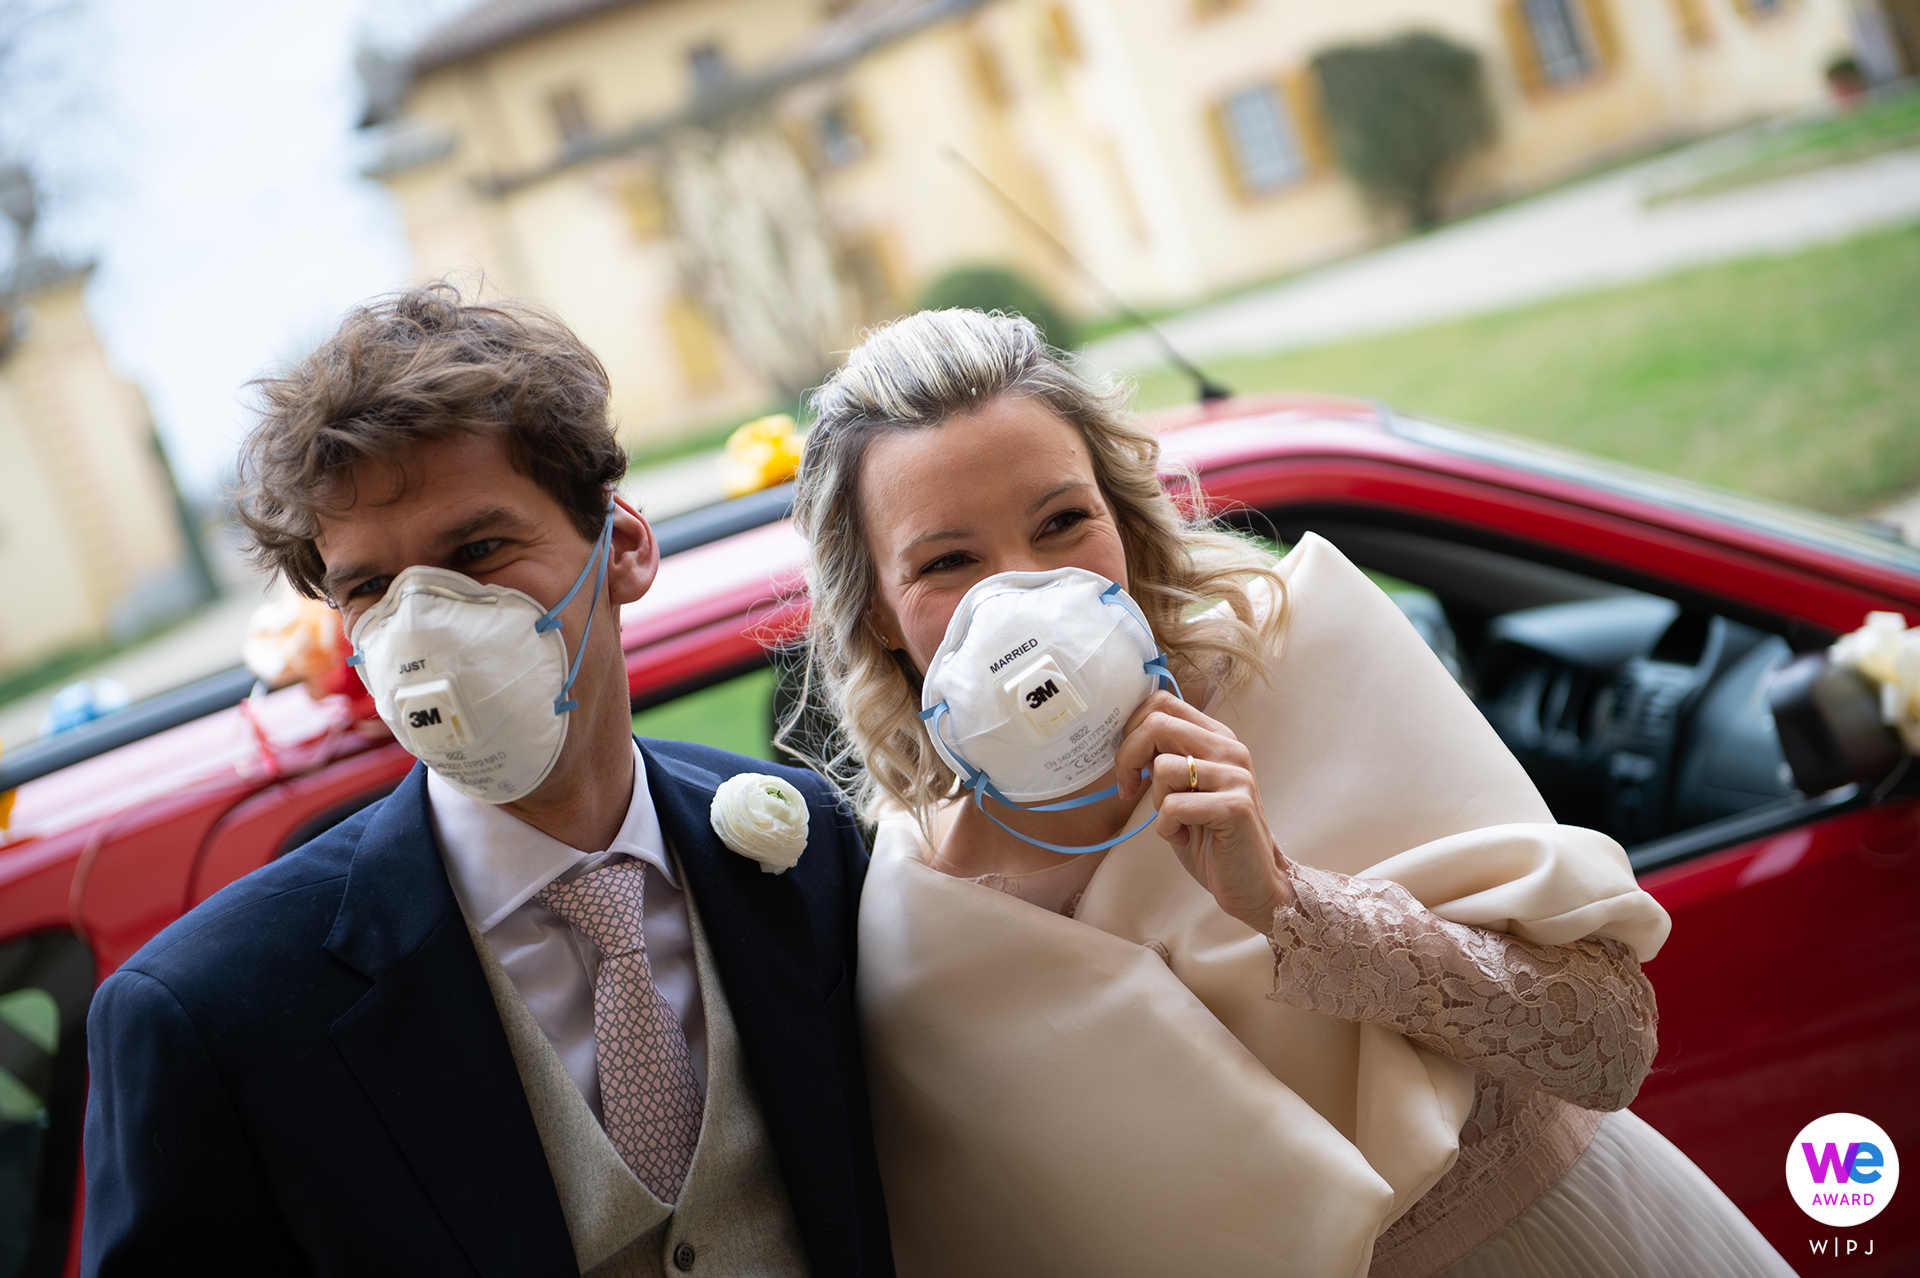 Villa Botta Adorno, Torre d Isola, Italy Elopement Photo of the Bride and Groom wearing masks - Covid-19